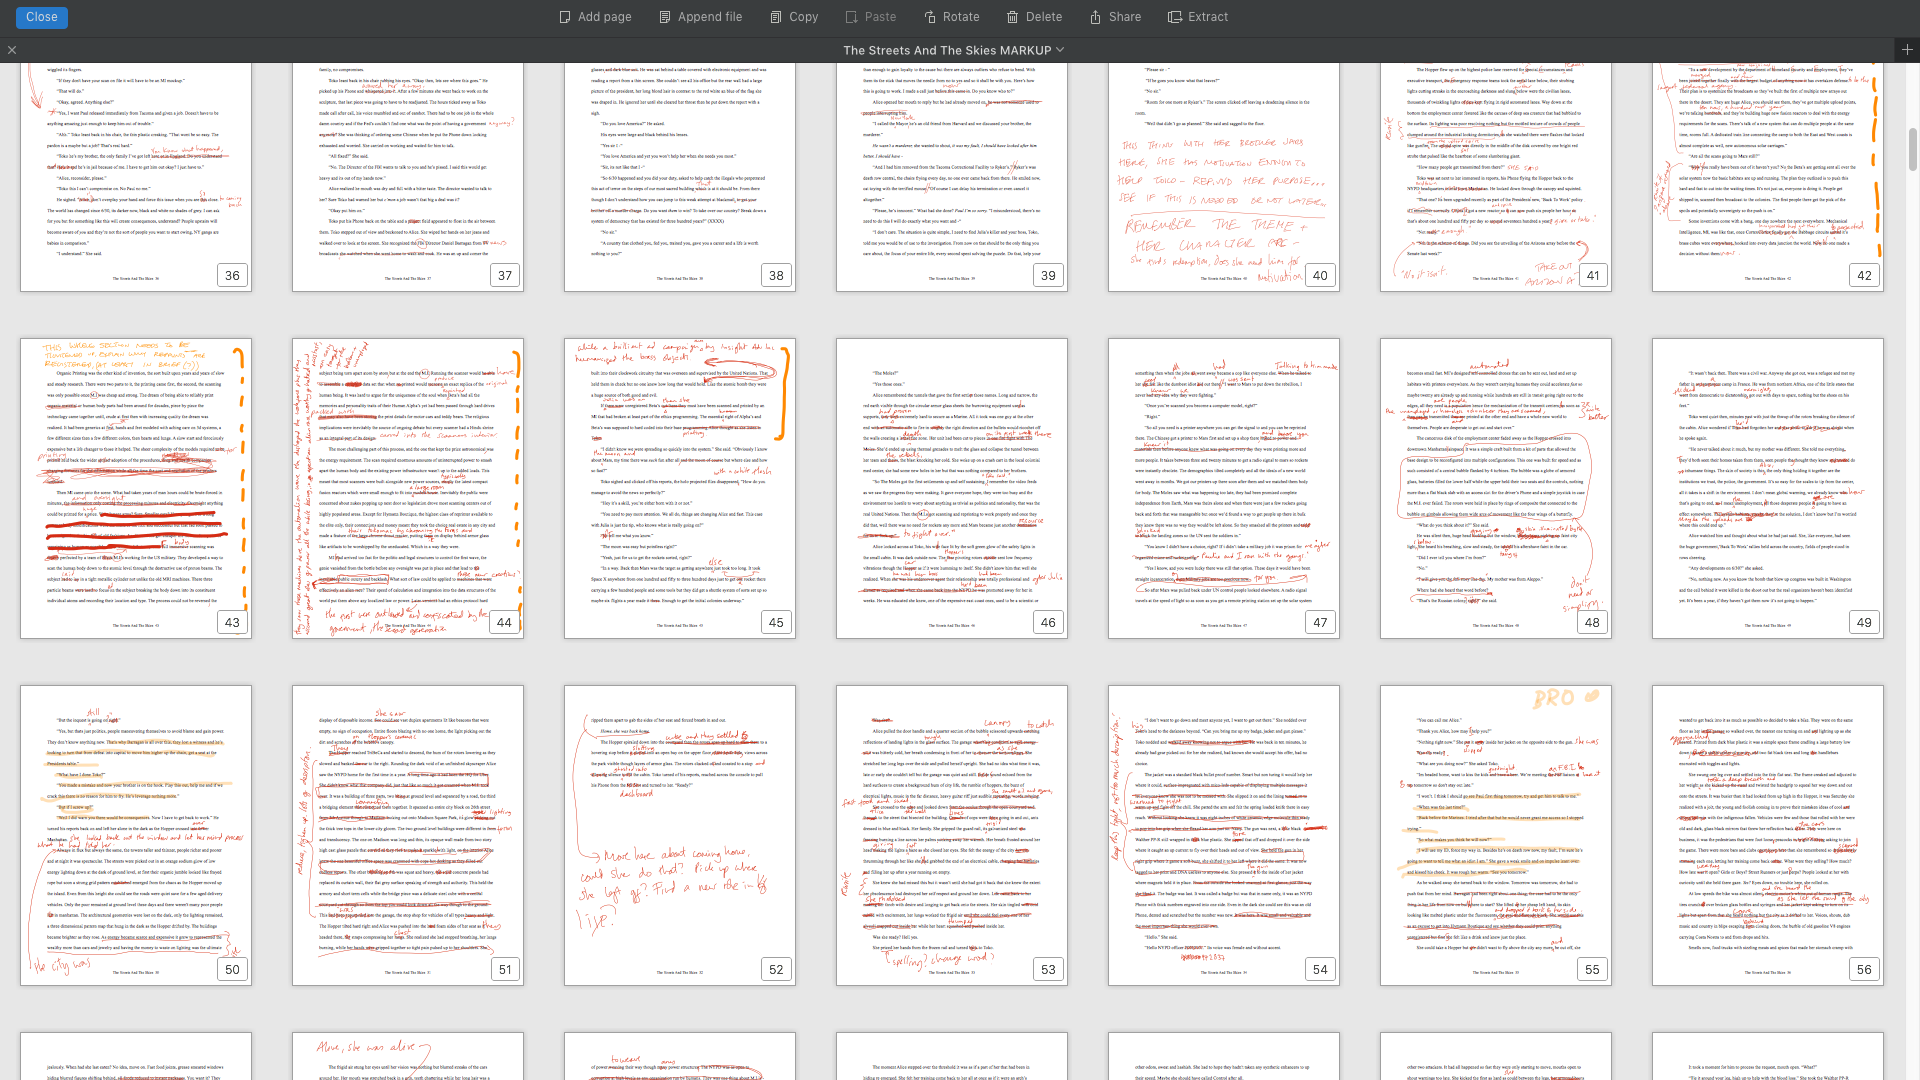 See what I have to go through? Read, red mark, revise, repeat ...